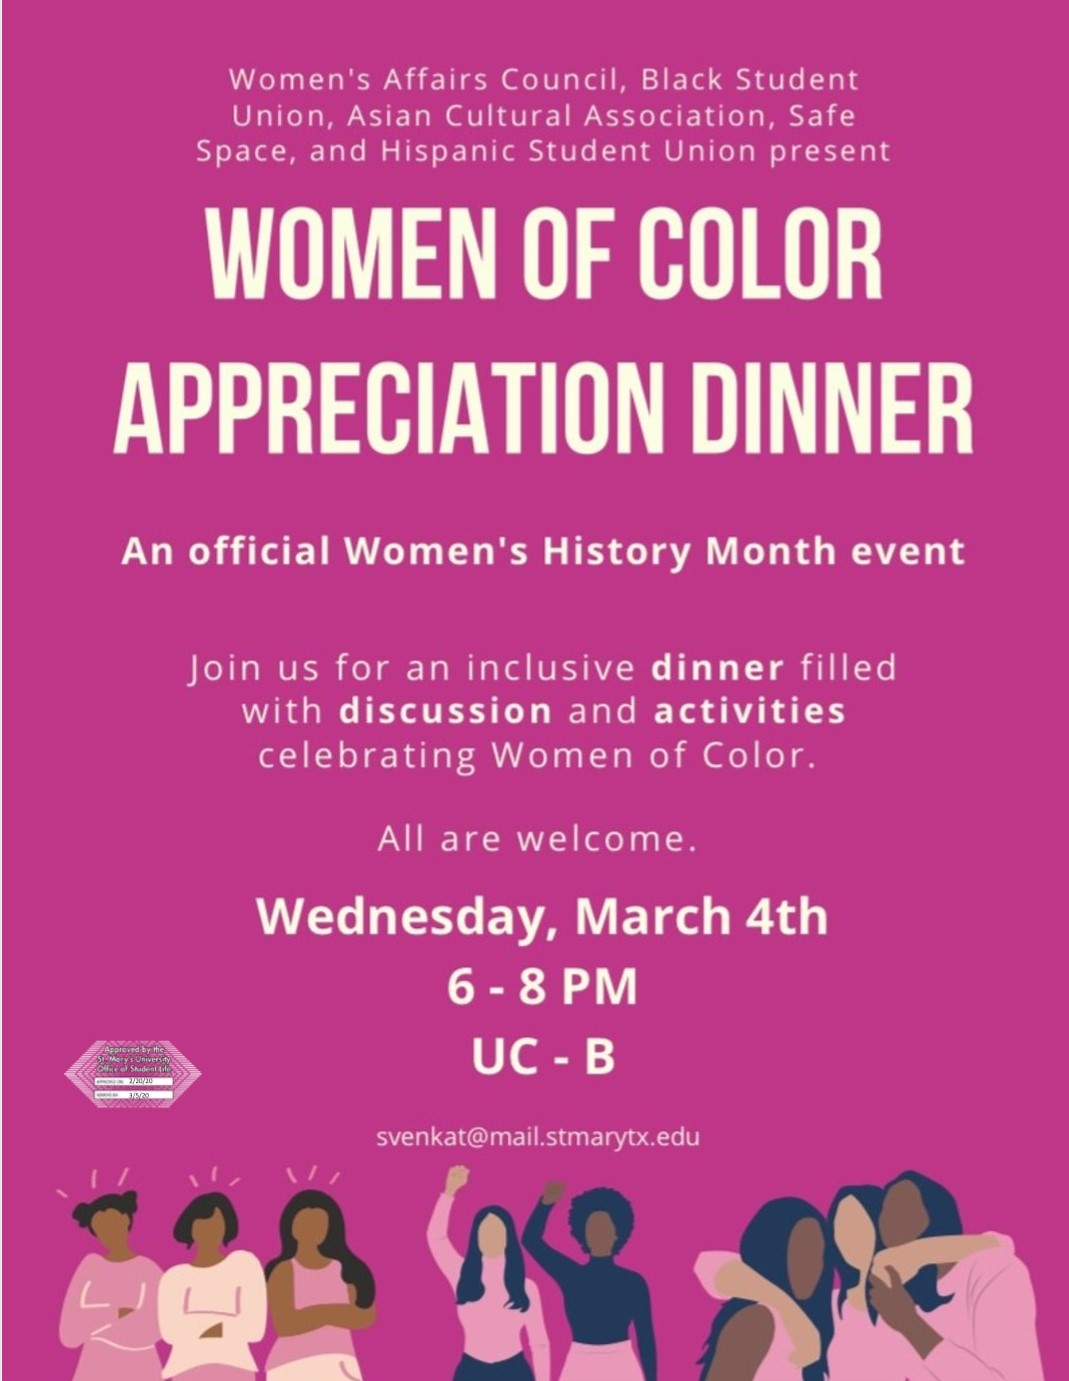 Women of Color Appreciation Dinner, Wednesday, March 4, 2020